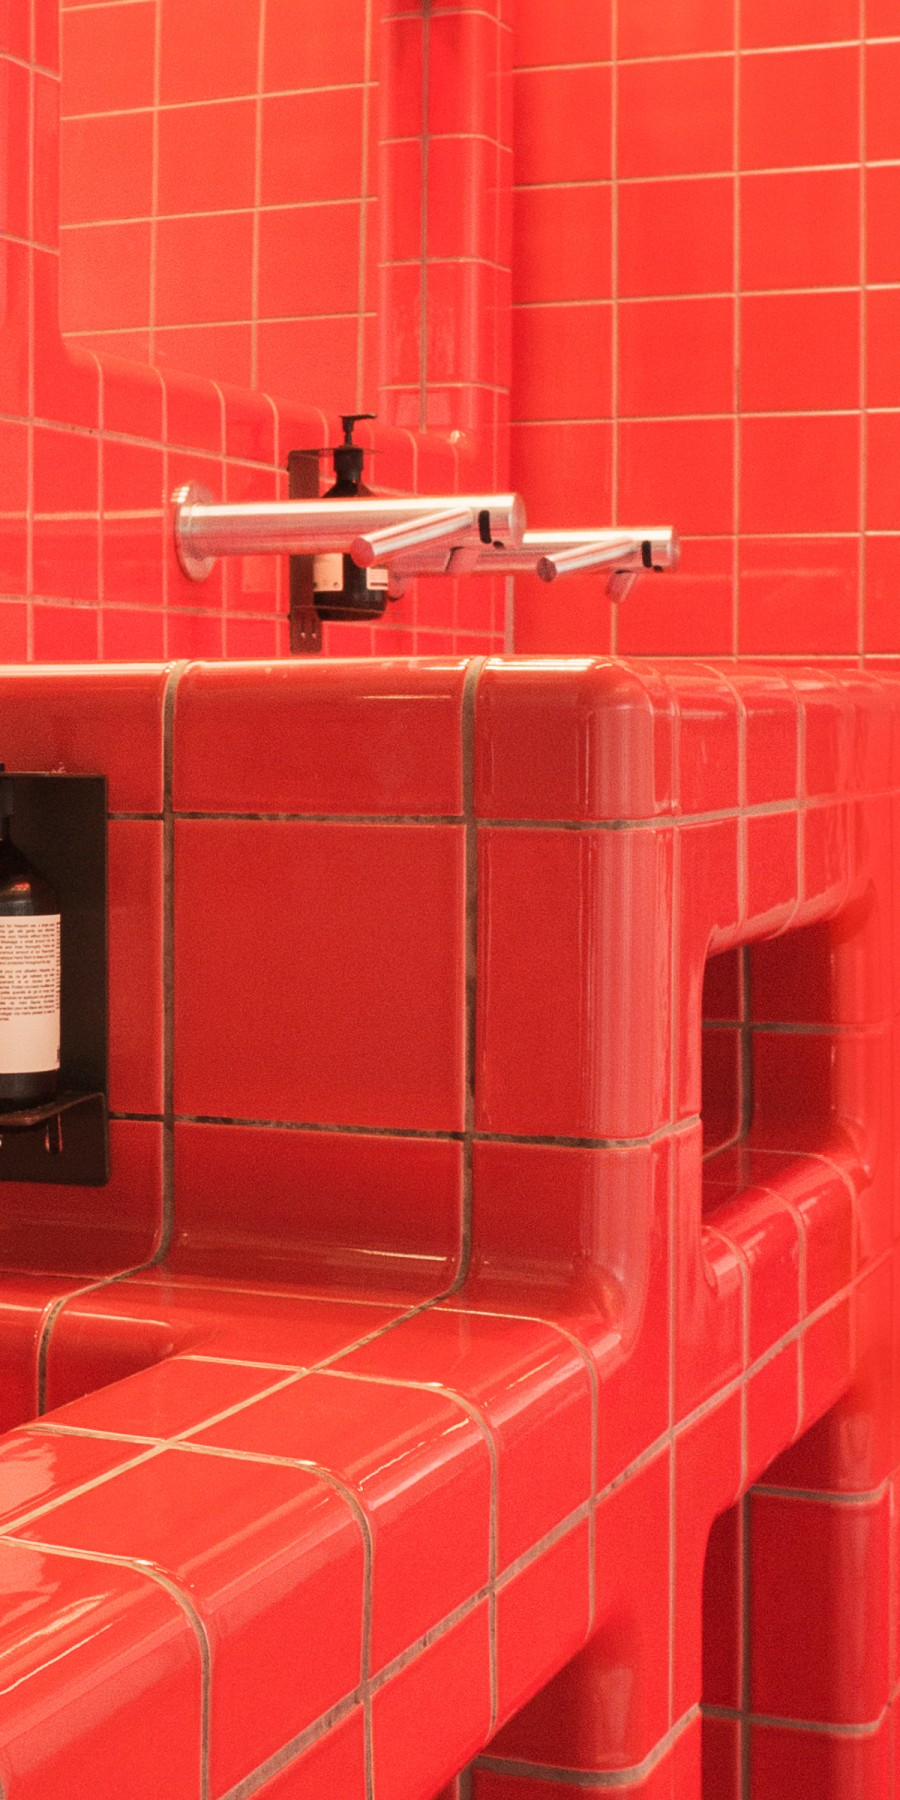 sink with red tiles, rounded  three-dimensional construction and functional tiles